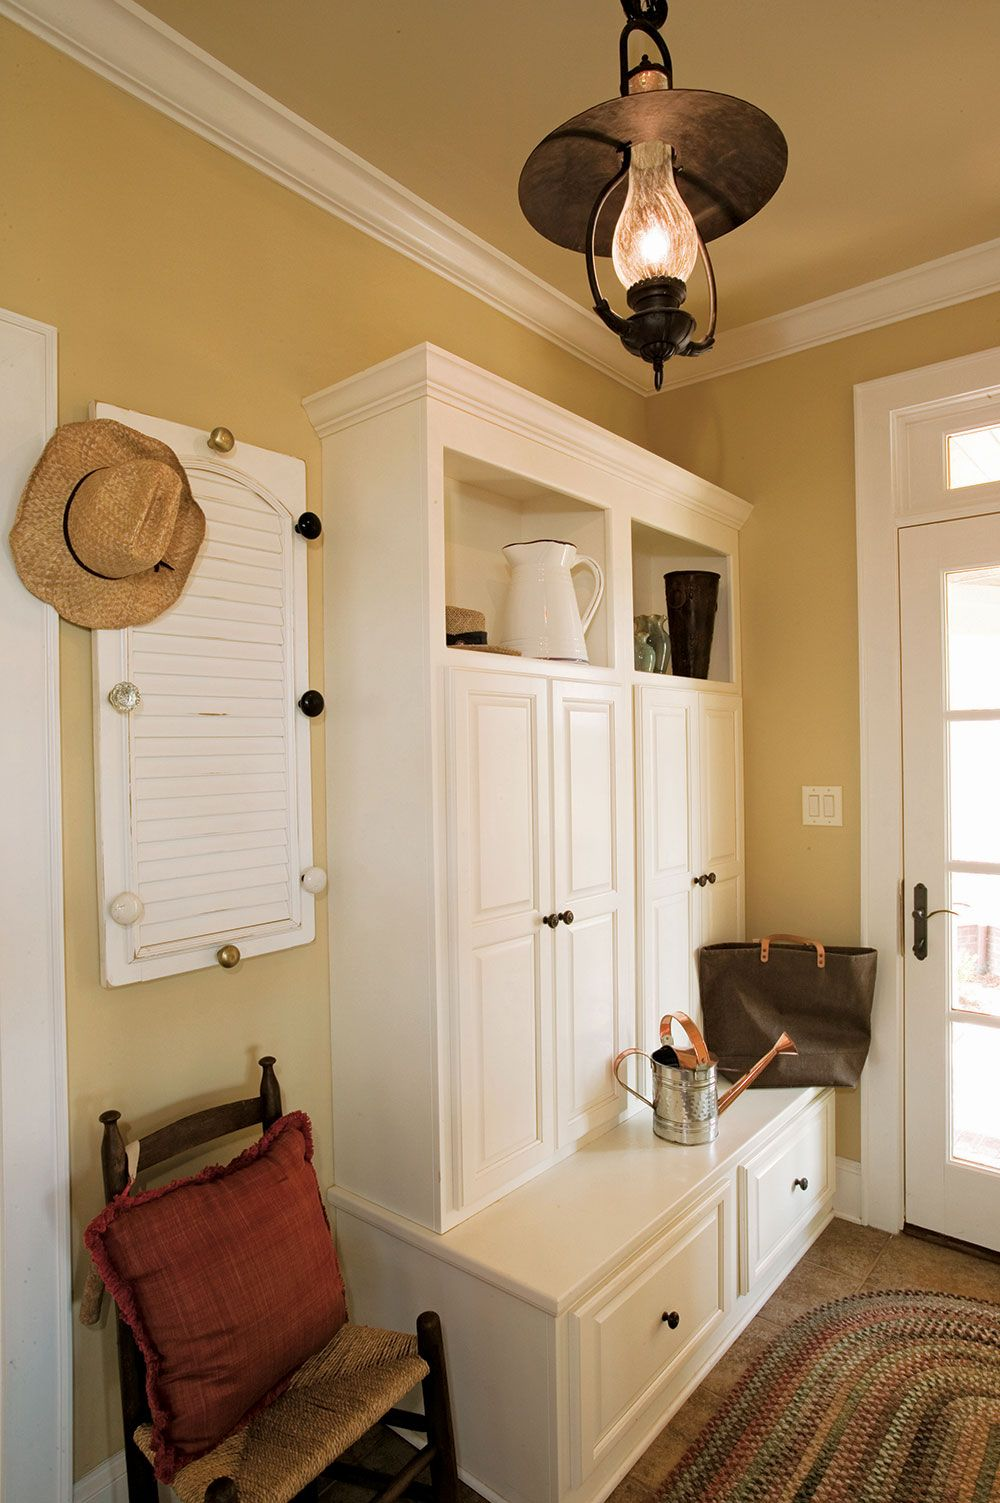 Consider a home plan with separate mud and utility rooms for Cedar ridge storage